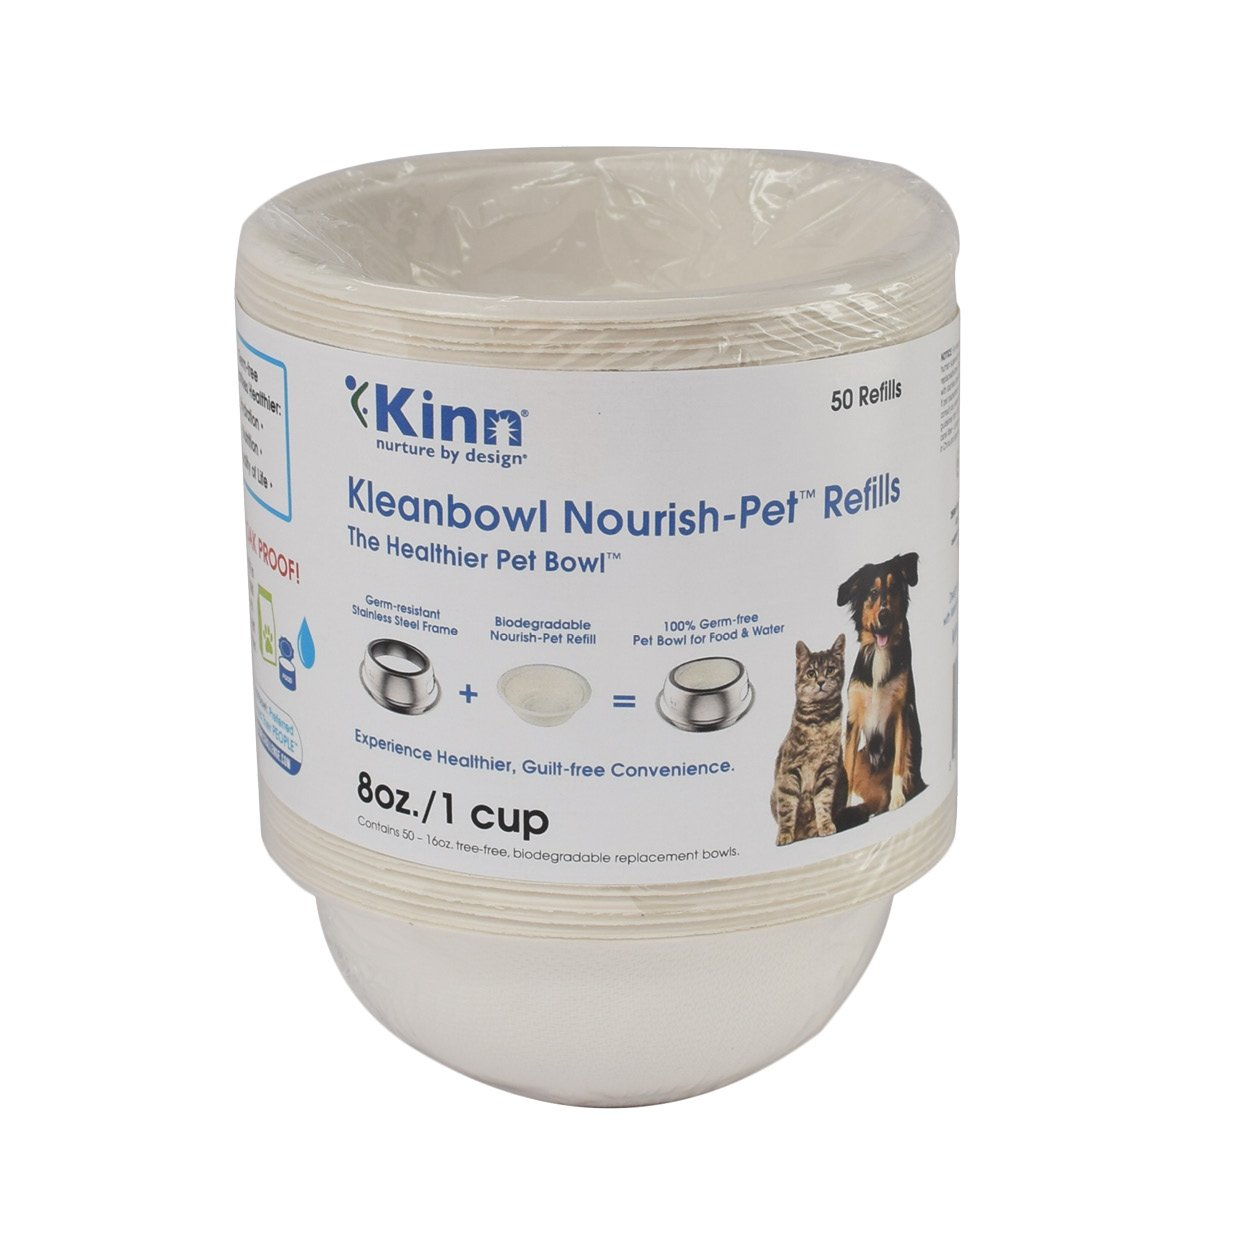 Kinn Kleanbowl Nourish Pet Refill Food & Water Bowls for Dogs & Cats, 8 ounce (1 cup)